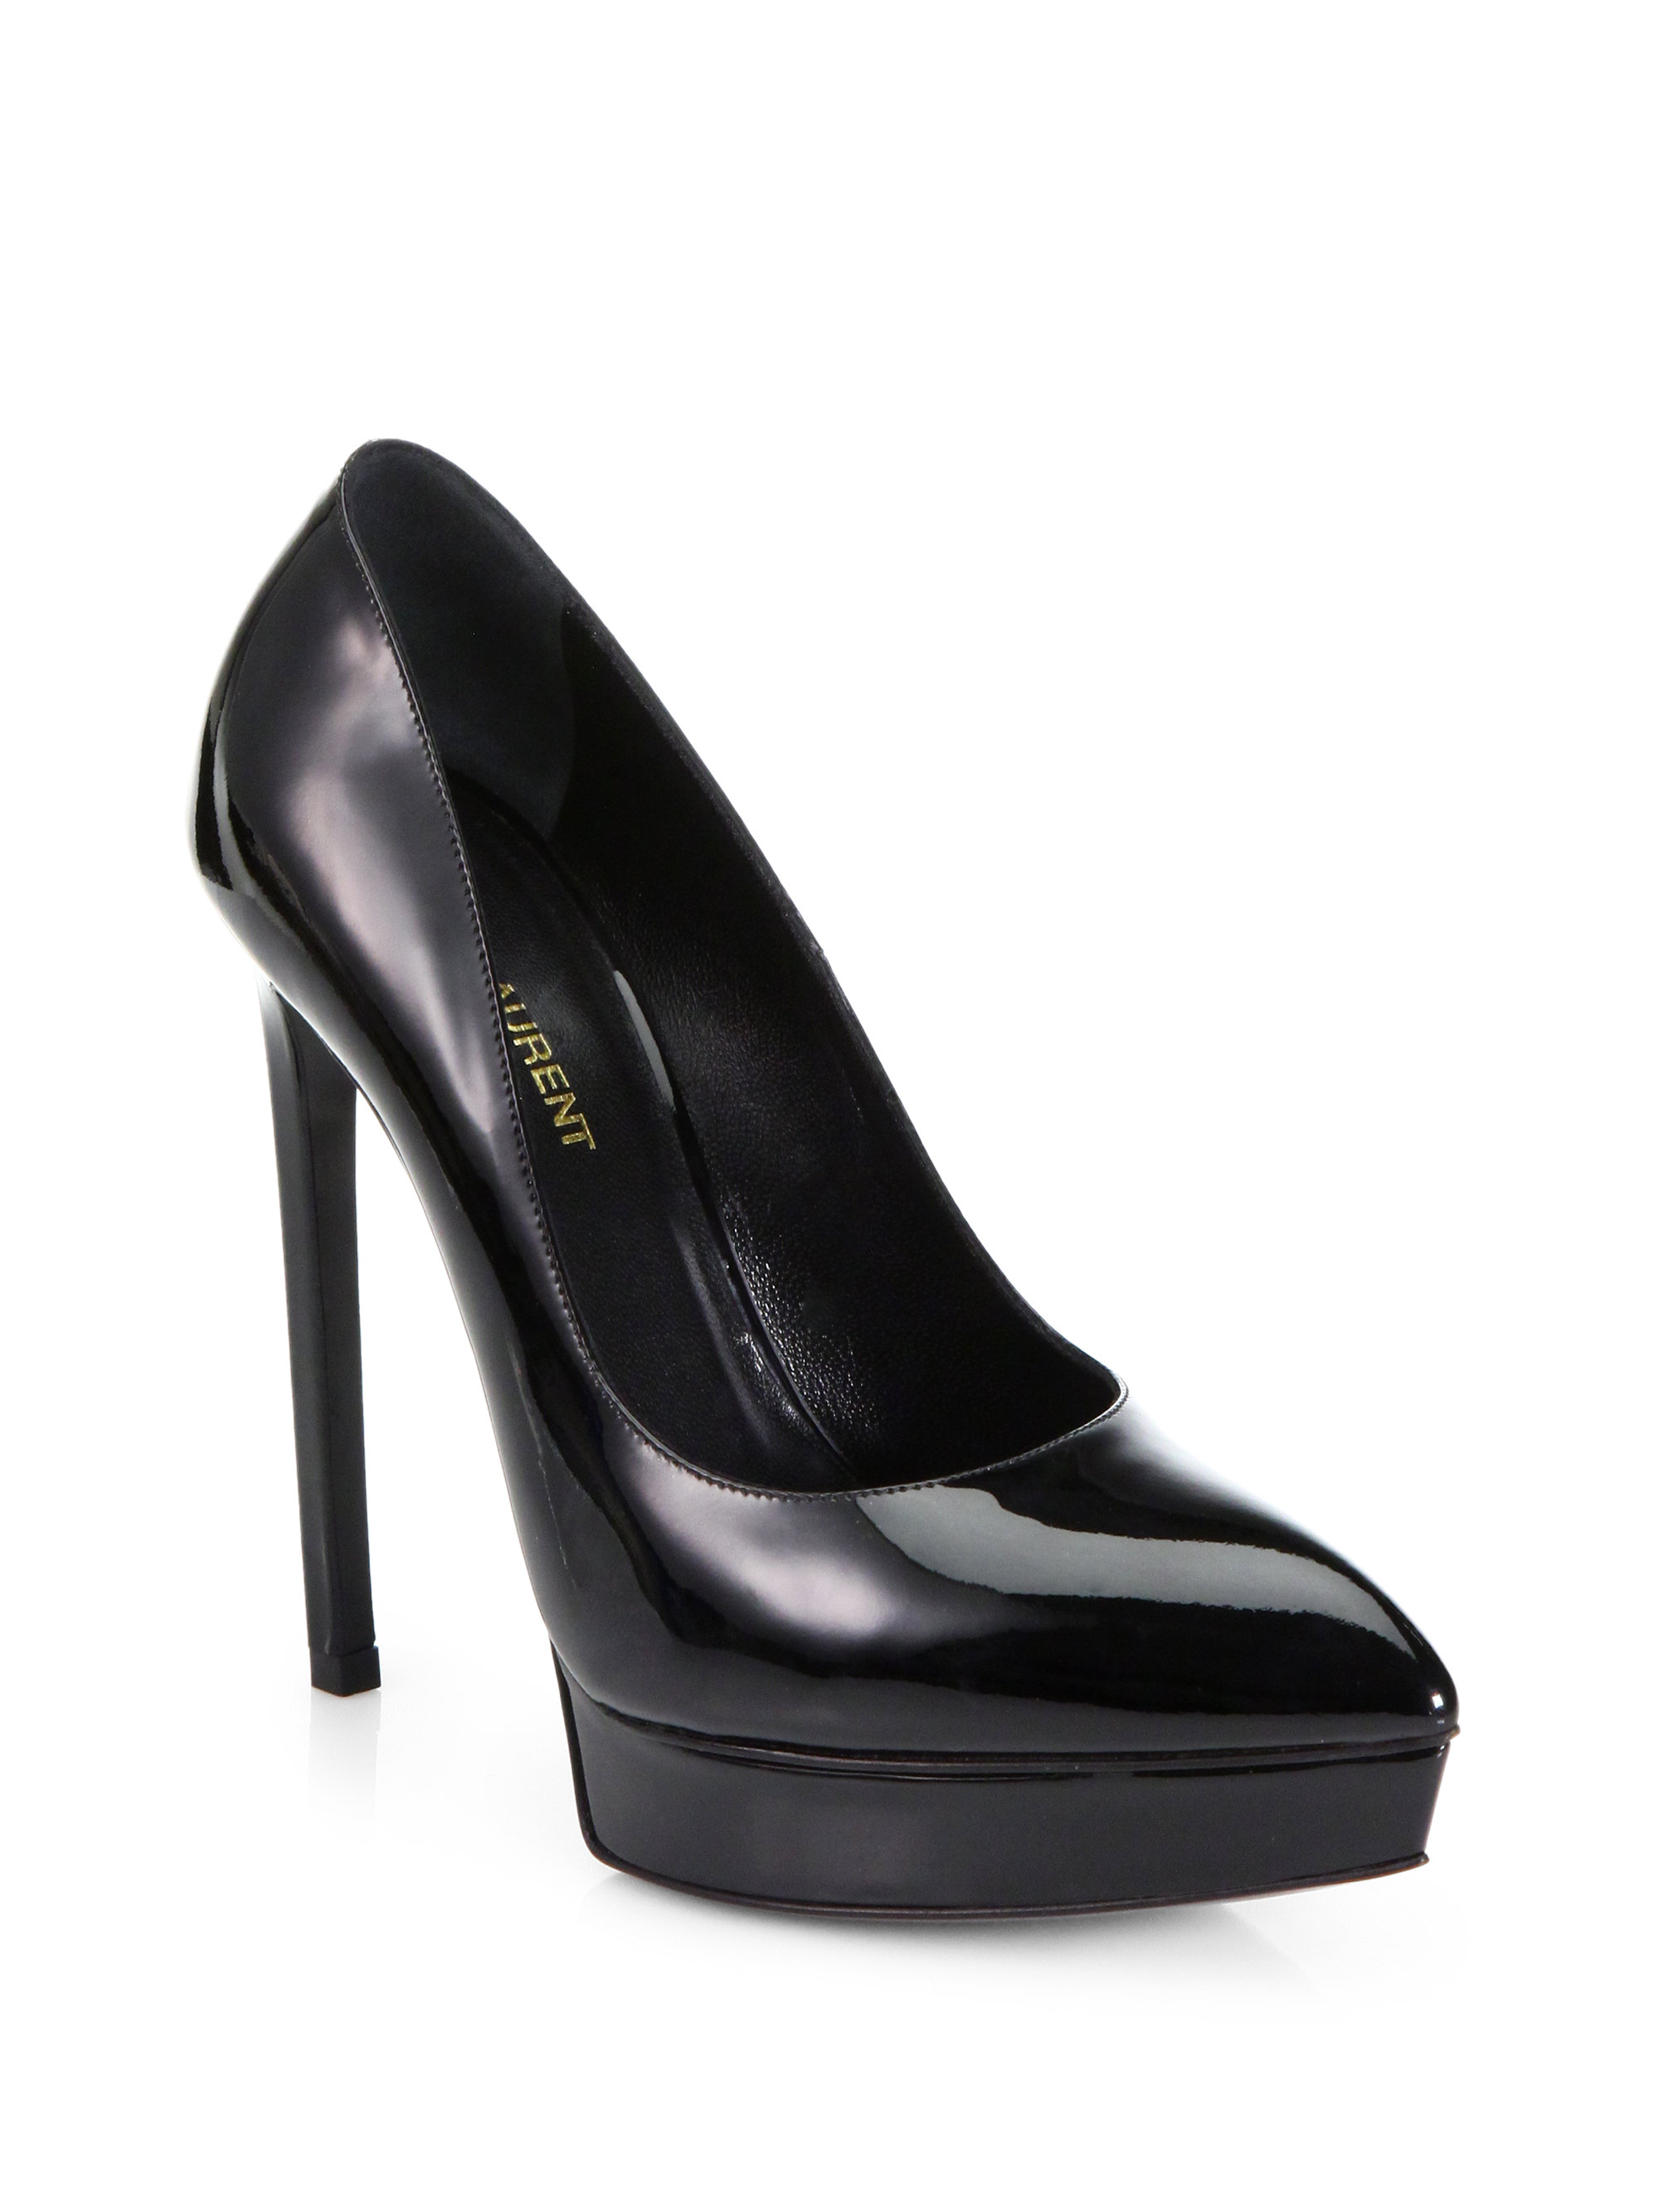 0a08a339642 Lyst - Saint Laurent Janis Patent Leather Platform Pumps in Black